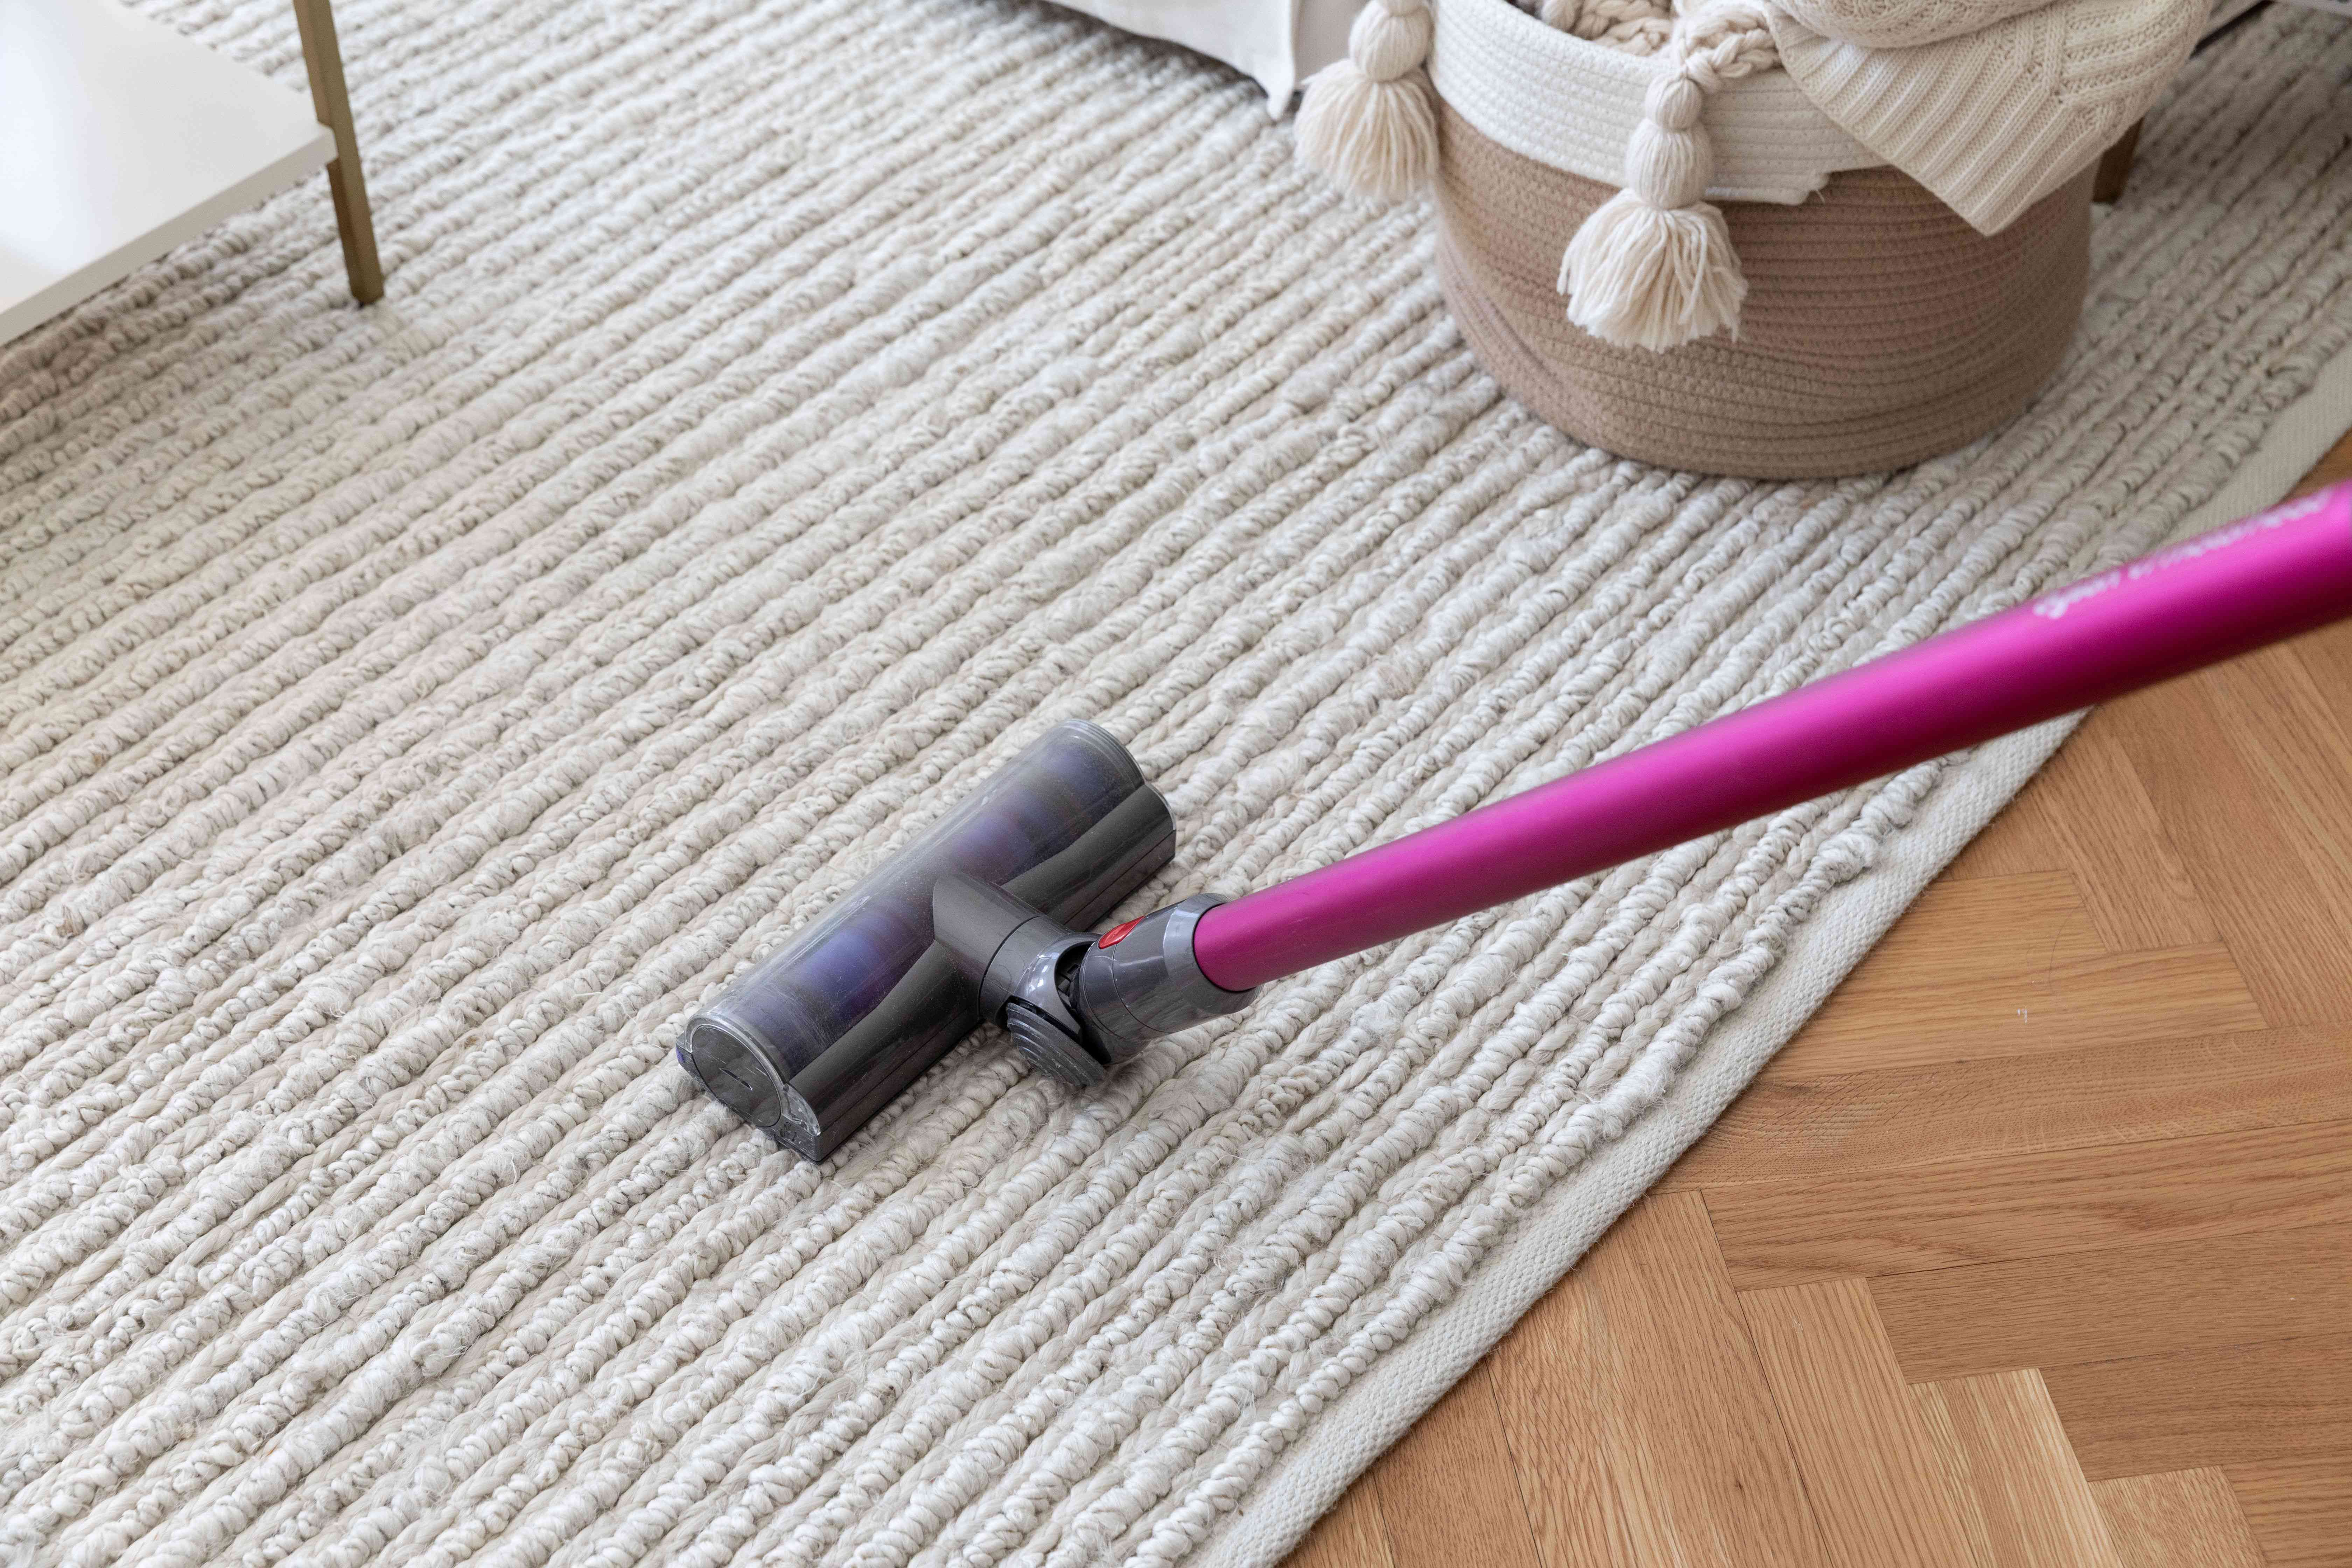 Pink handled vacuum passing over beige rug for cleaning